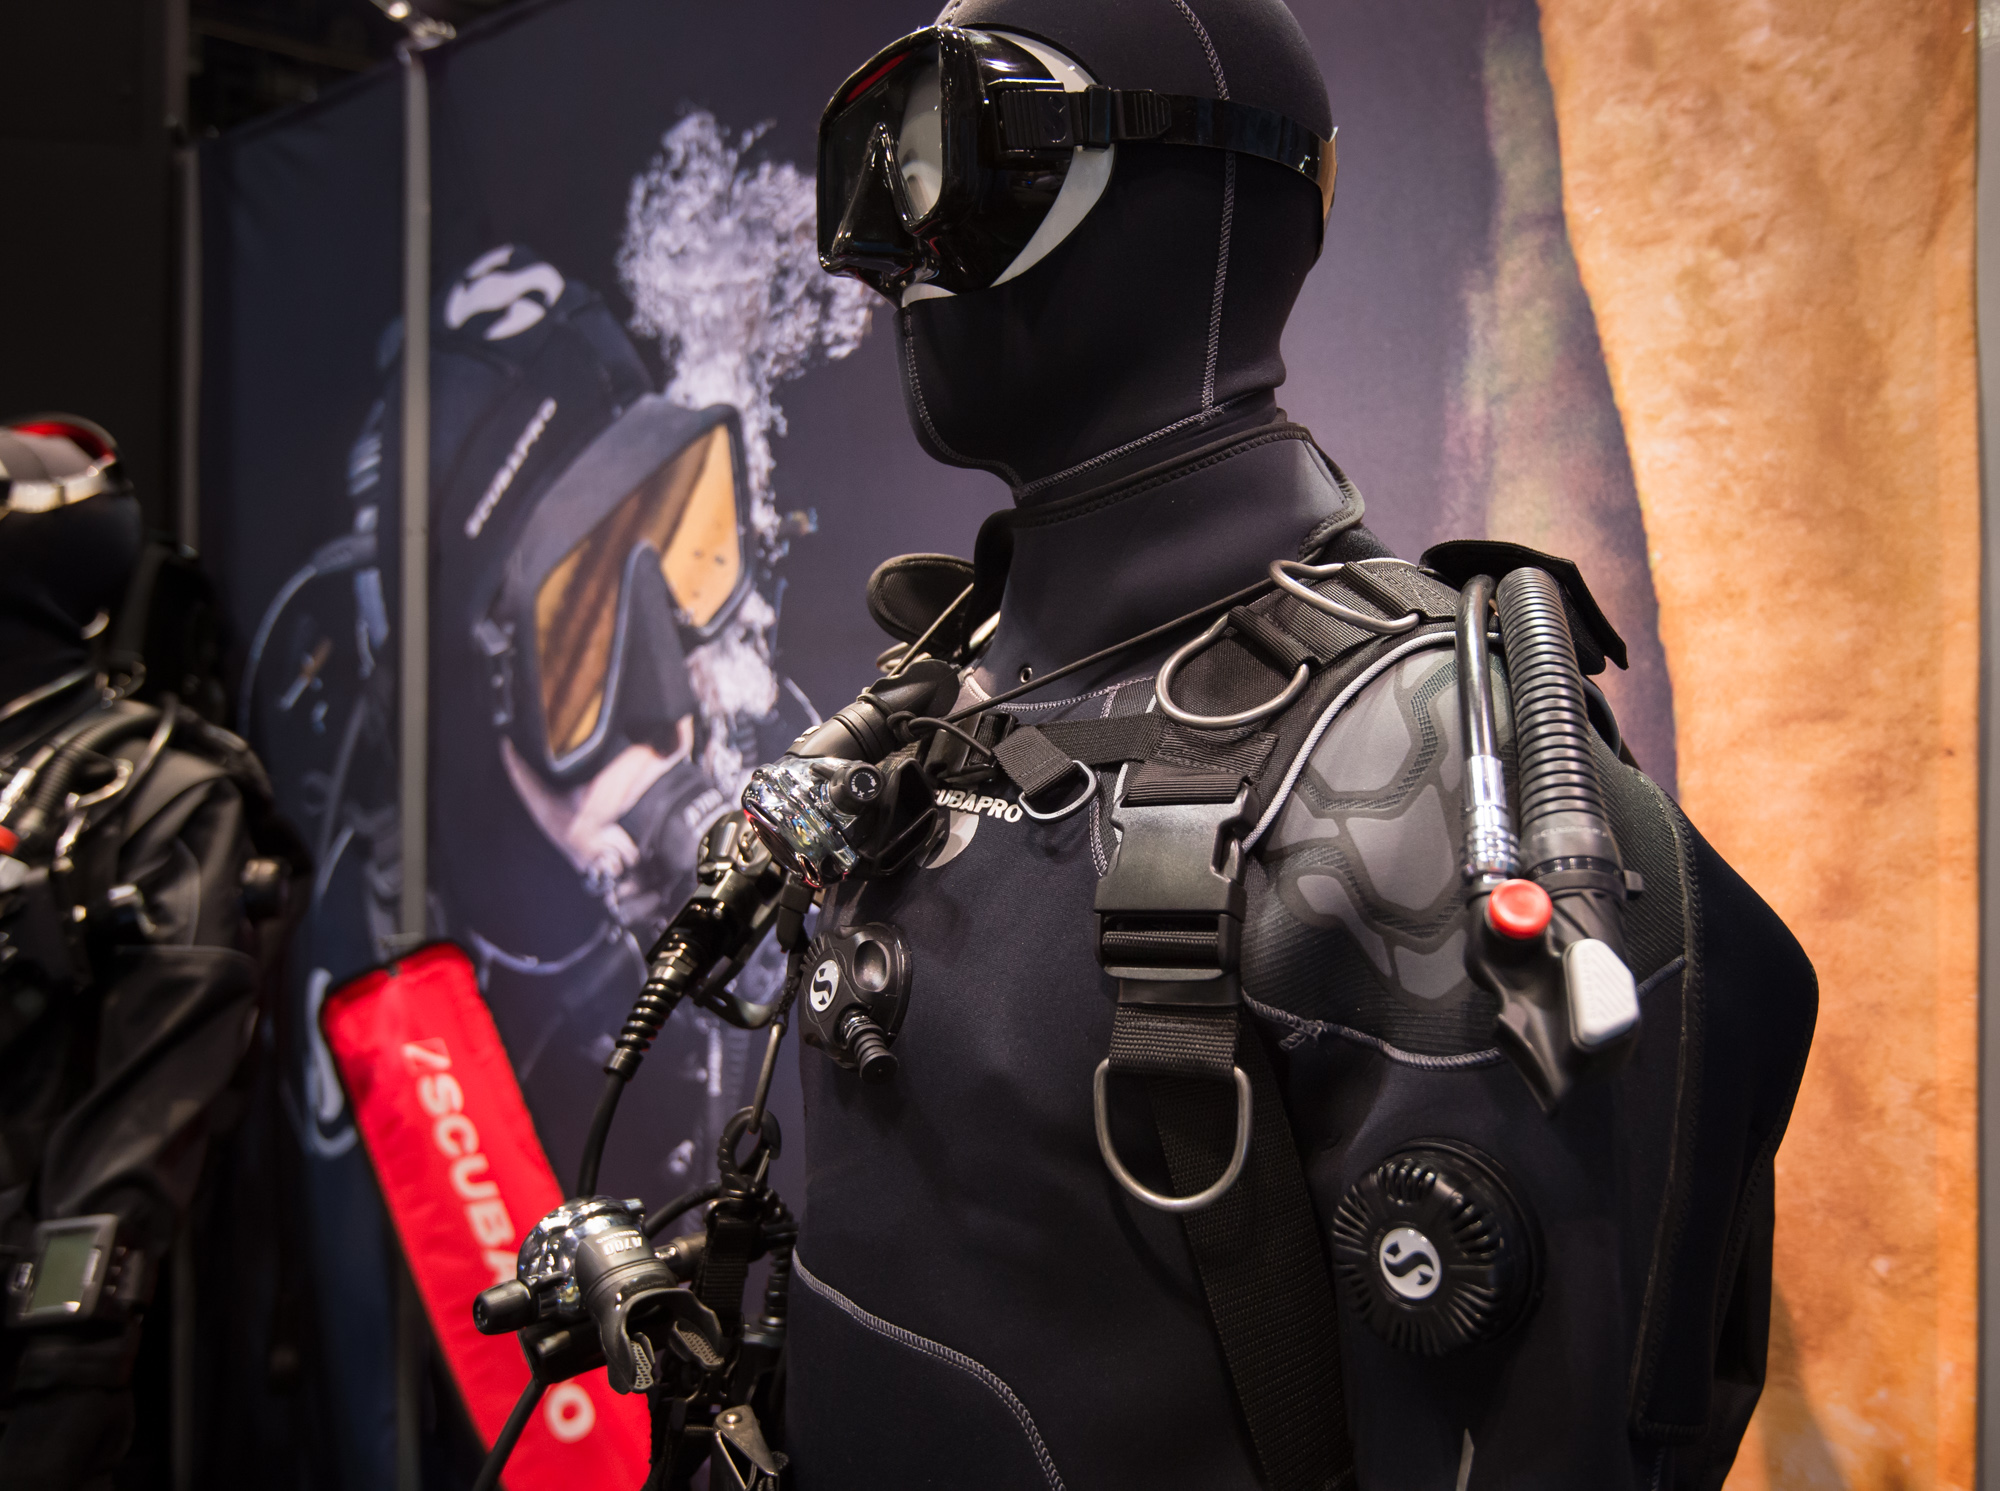 SCUBAPRO didn't show off too much in terms of new gear, but their  recent acquisition of SEABEAR  will bring a whole new catalog of tech to the storied company